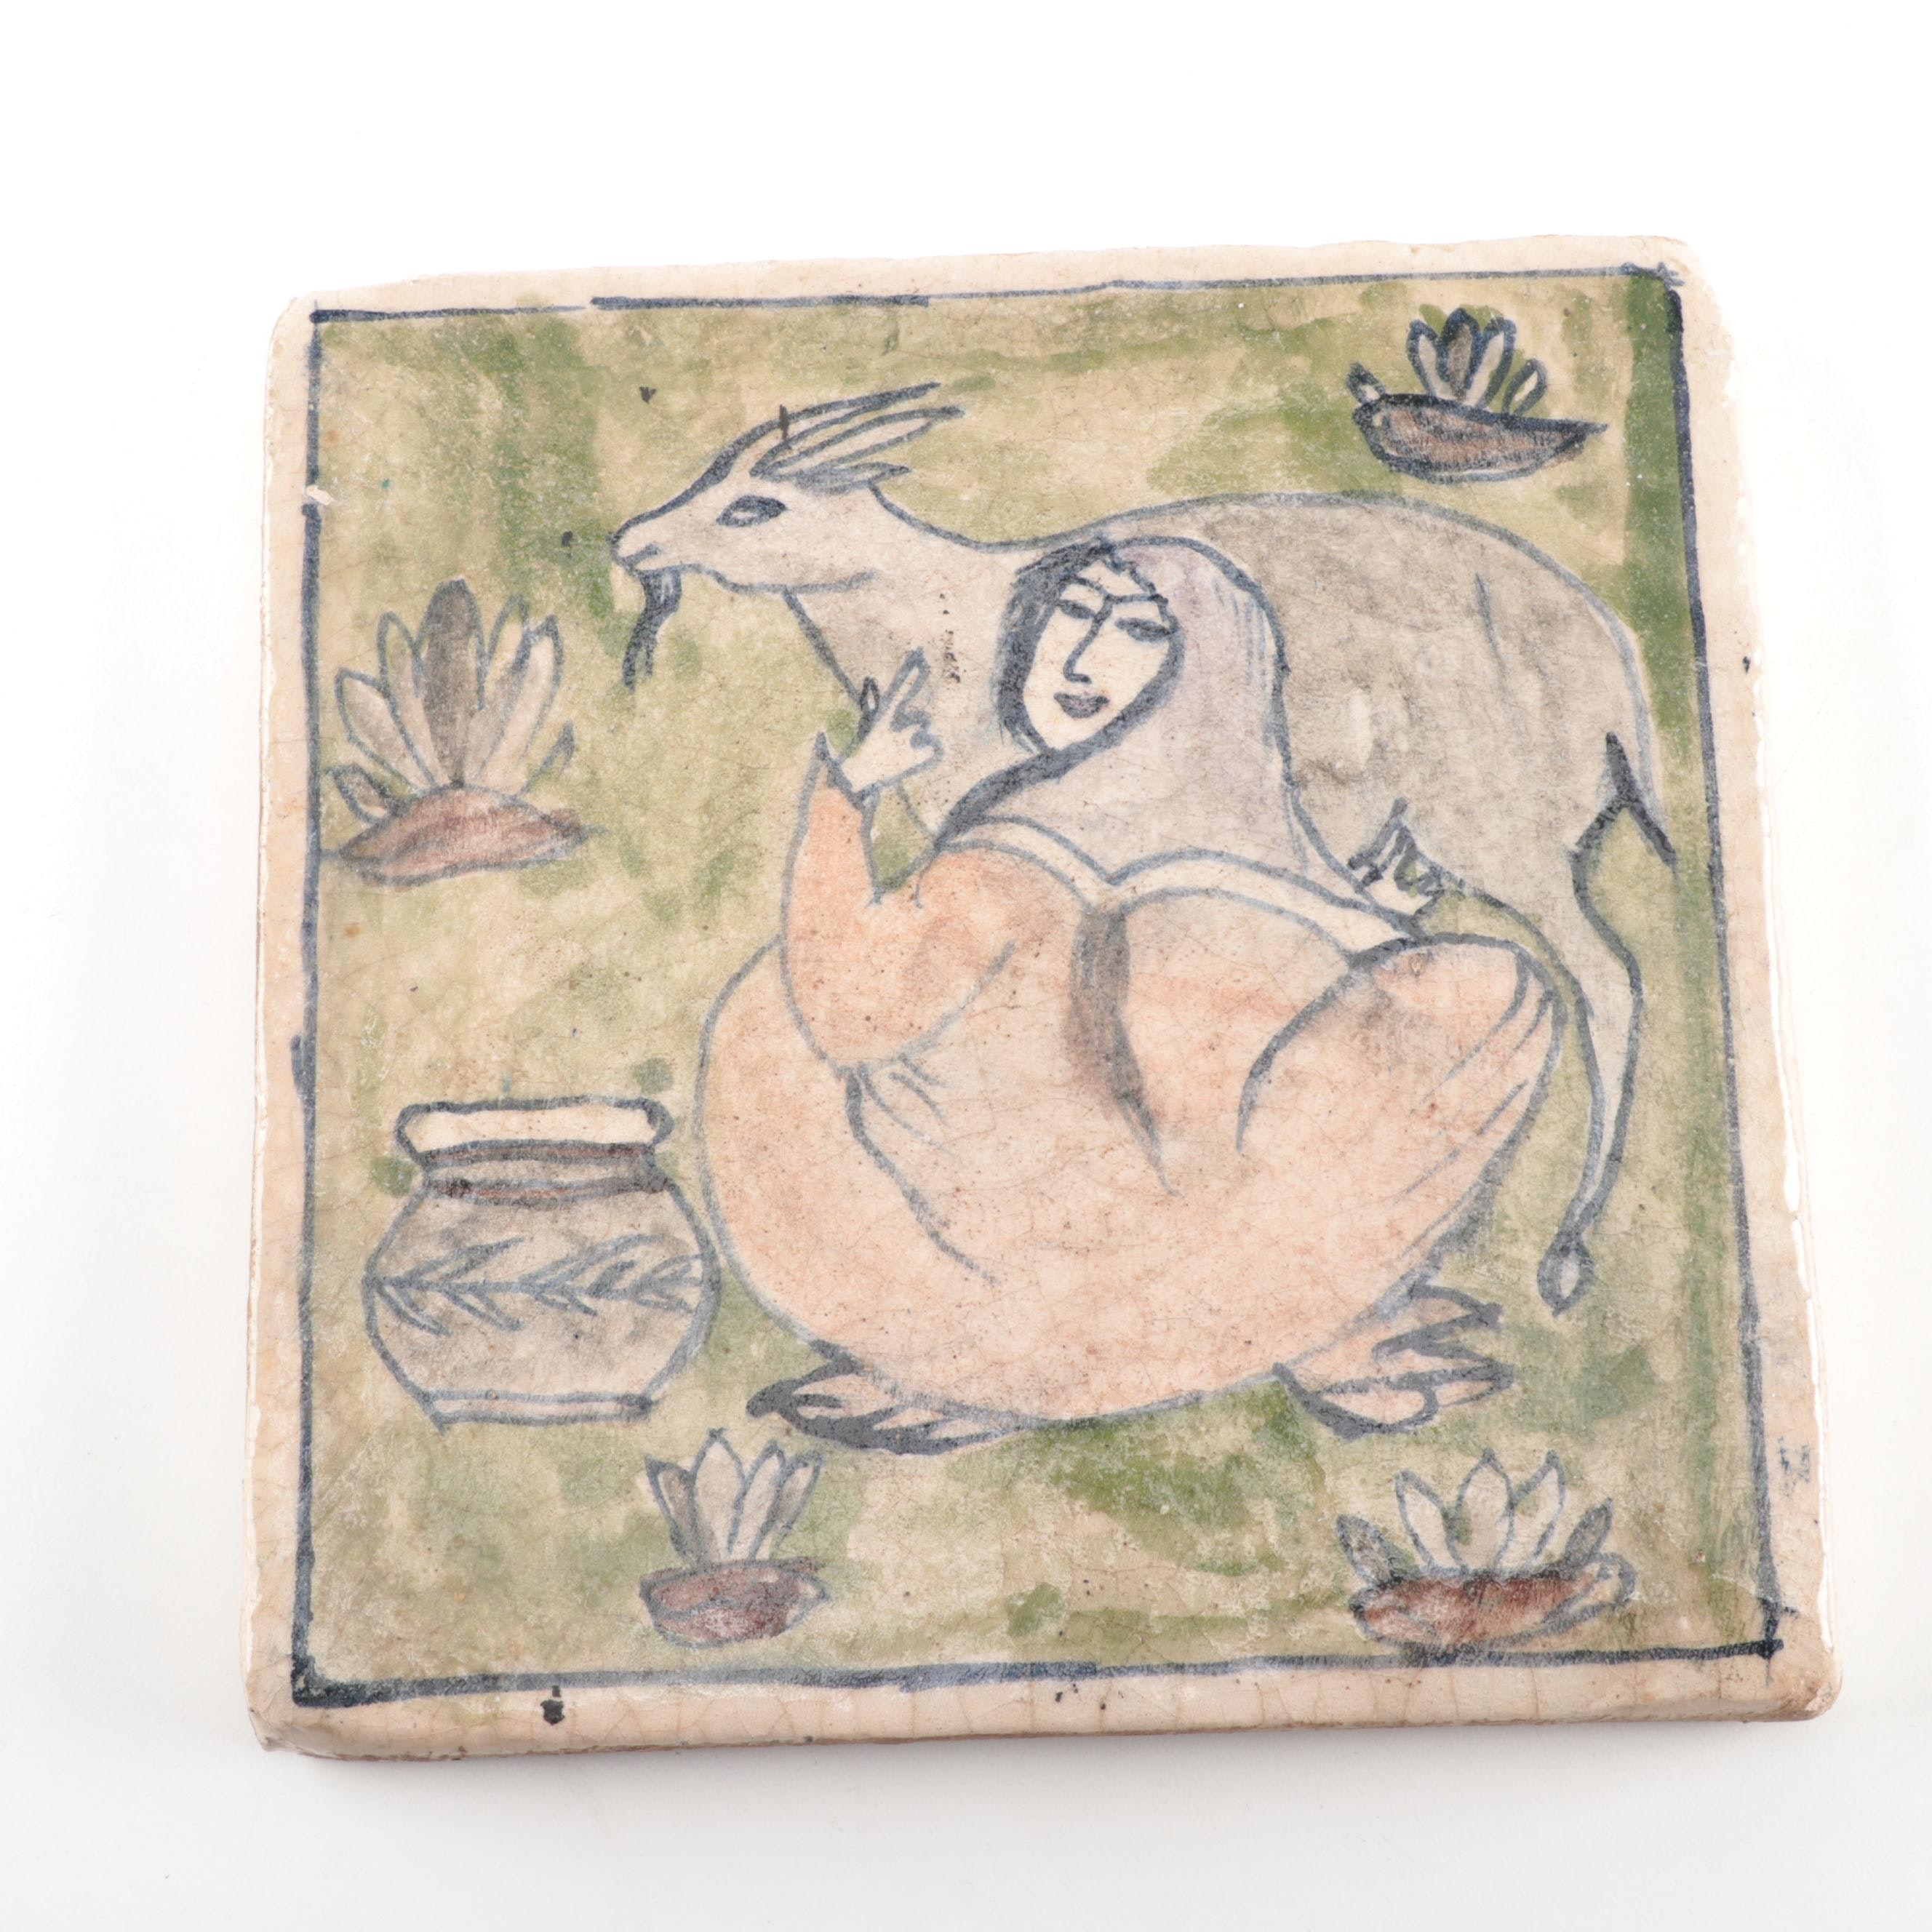 Hand Painted Ceramic Tile with Goat Milking Design